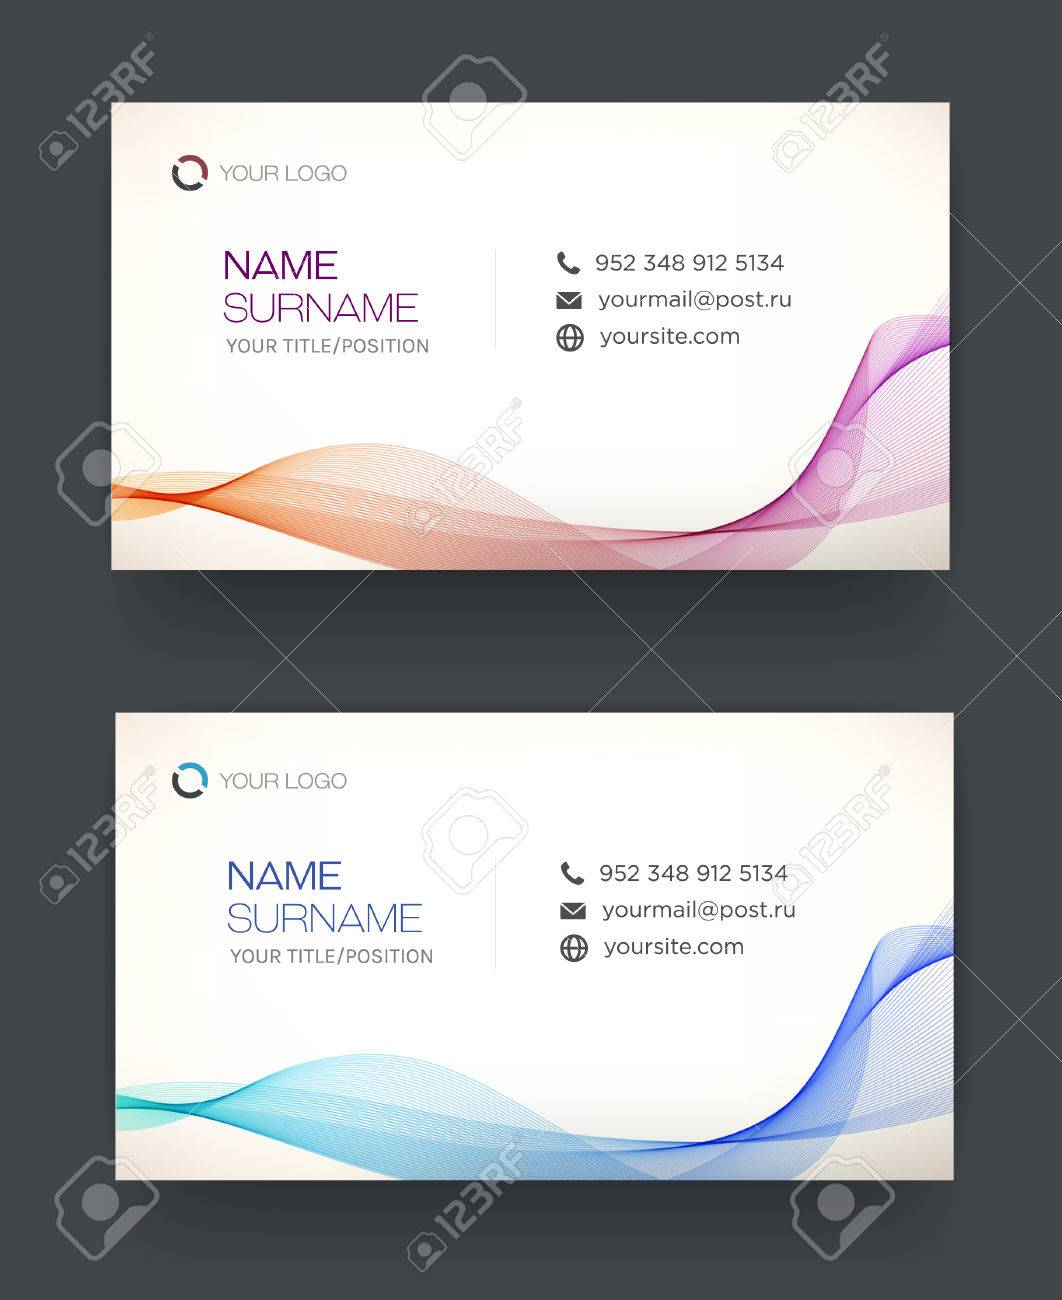 Business card template blue pattern vector design editable business card template blue pattern vector design editable personal card stock vector cheaphphosting Choice Image